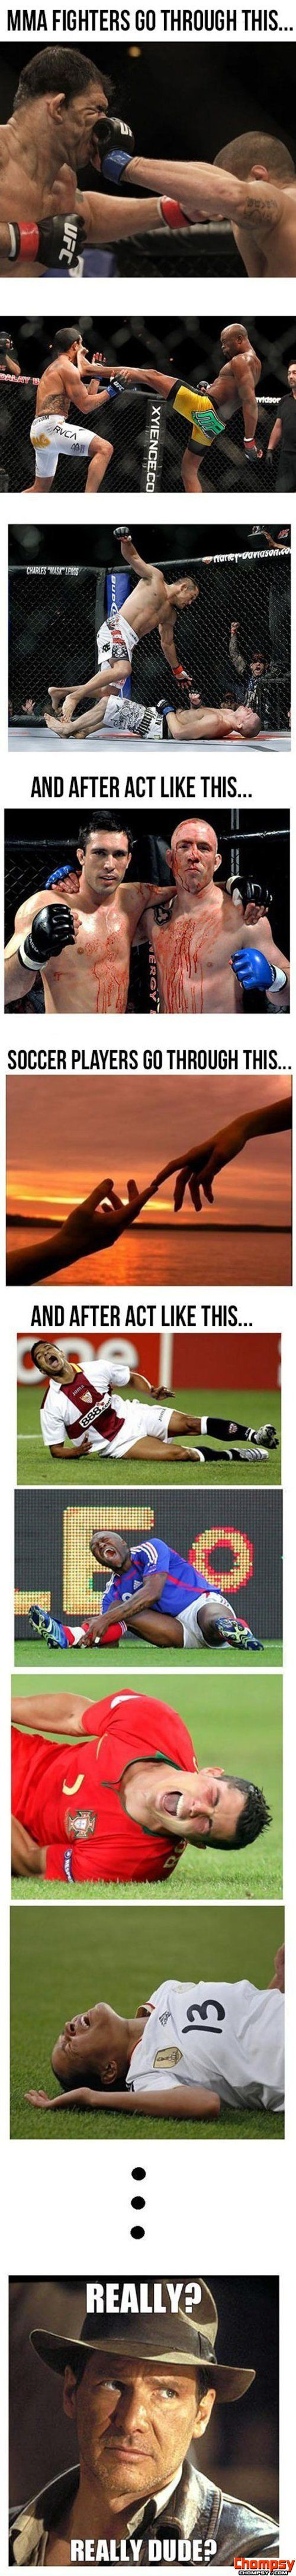 Funny Pictures Fighters vs. Soccer Players